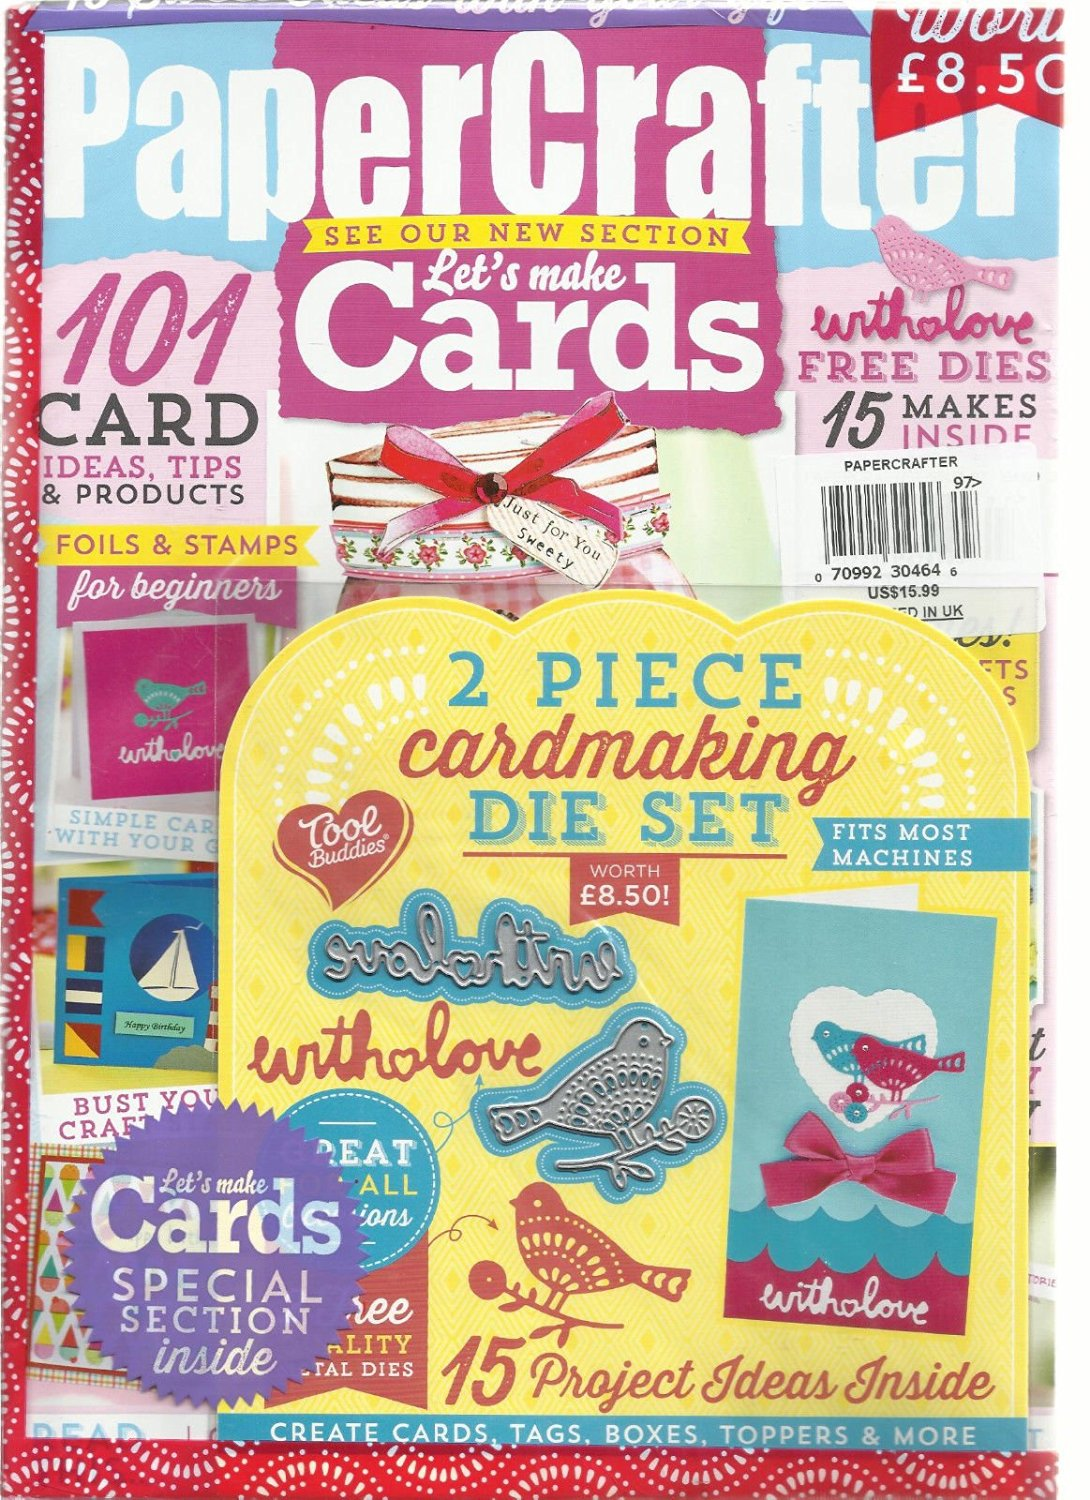 PAPER CRAFTER MAGAZINE, SEE OUR NEW SECTION LET'S MAKE CARDS ISSUE, 2016